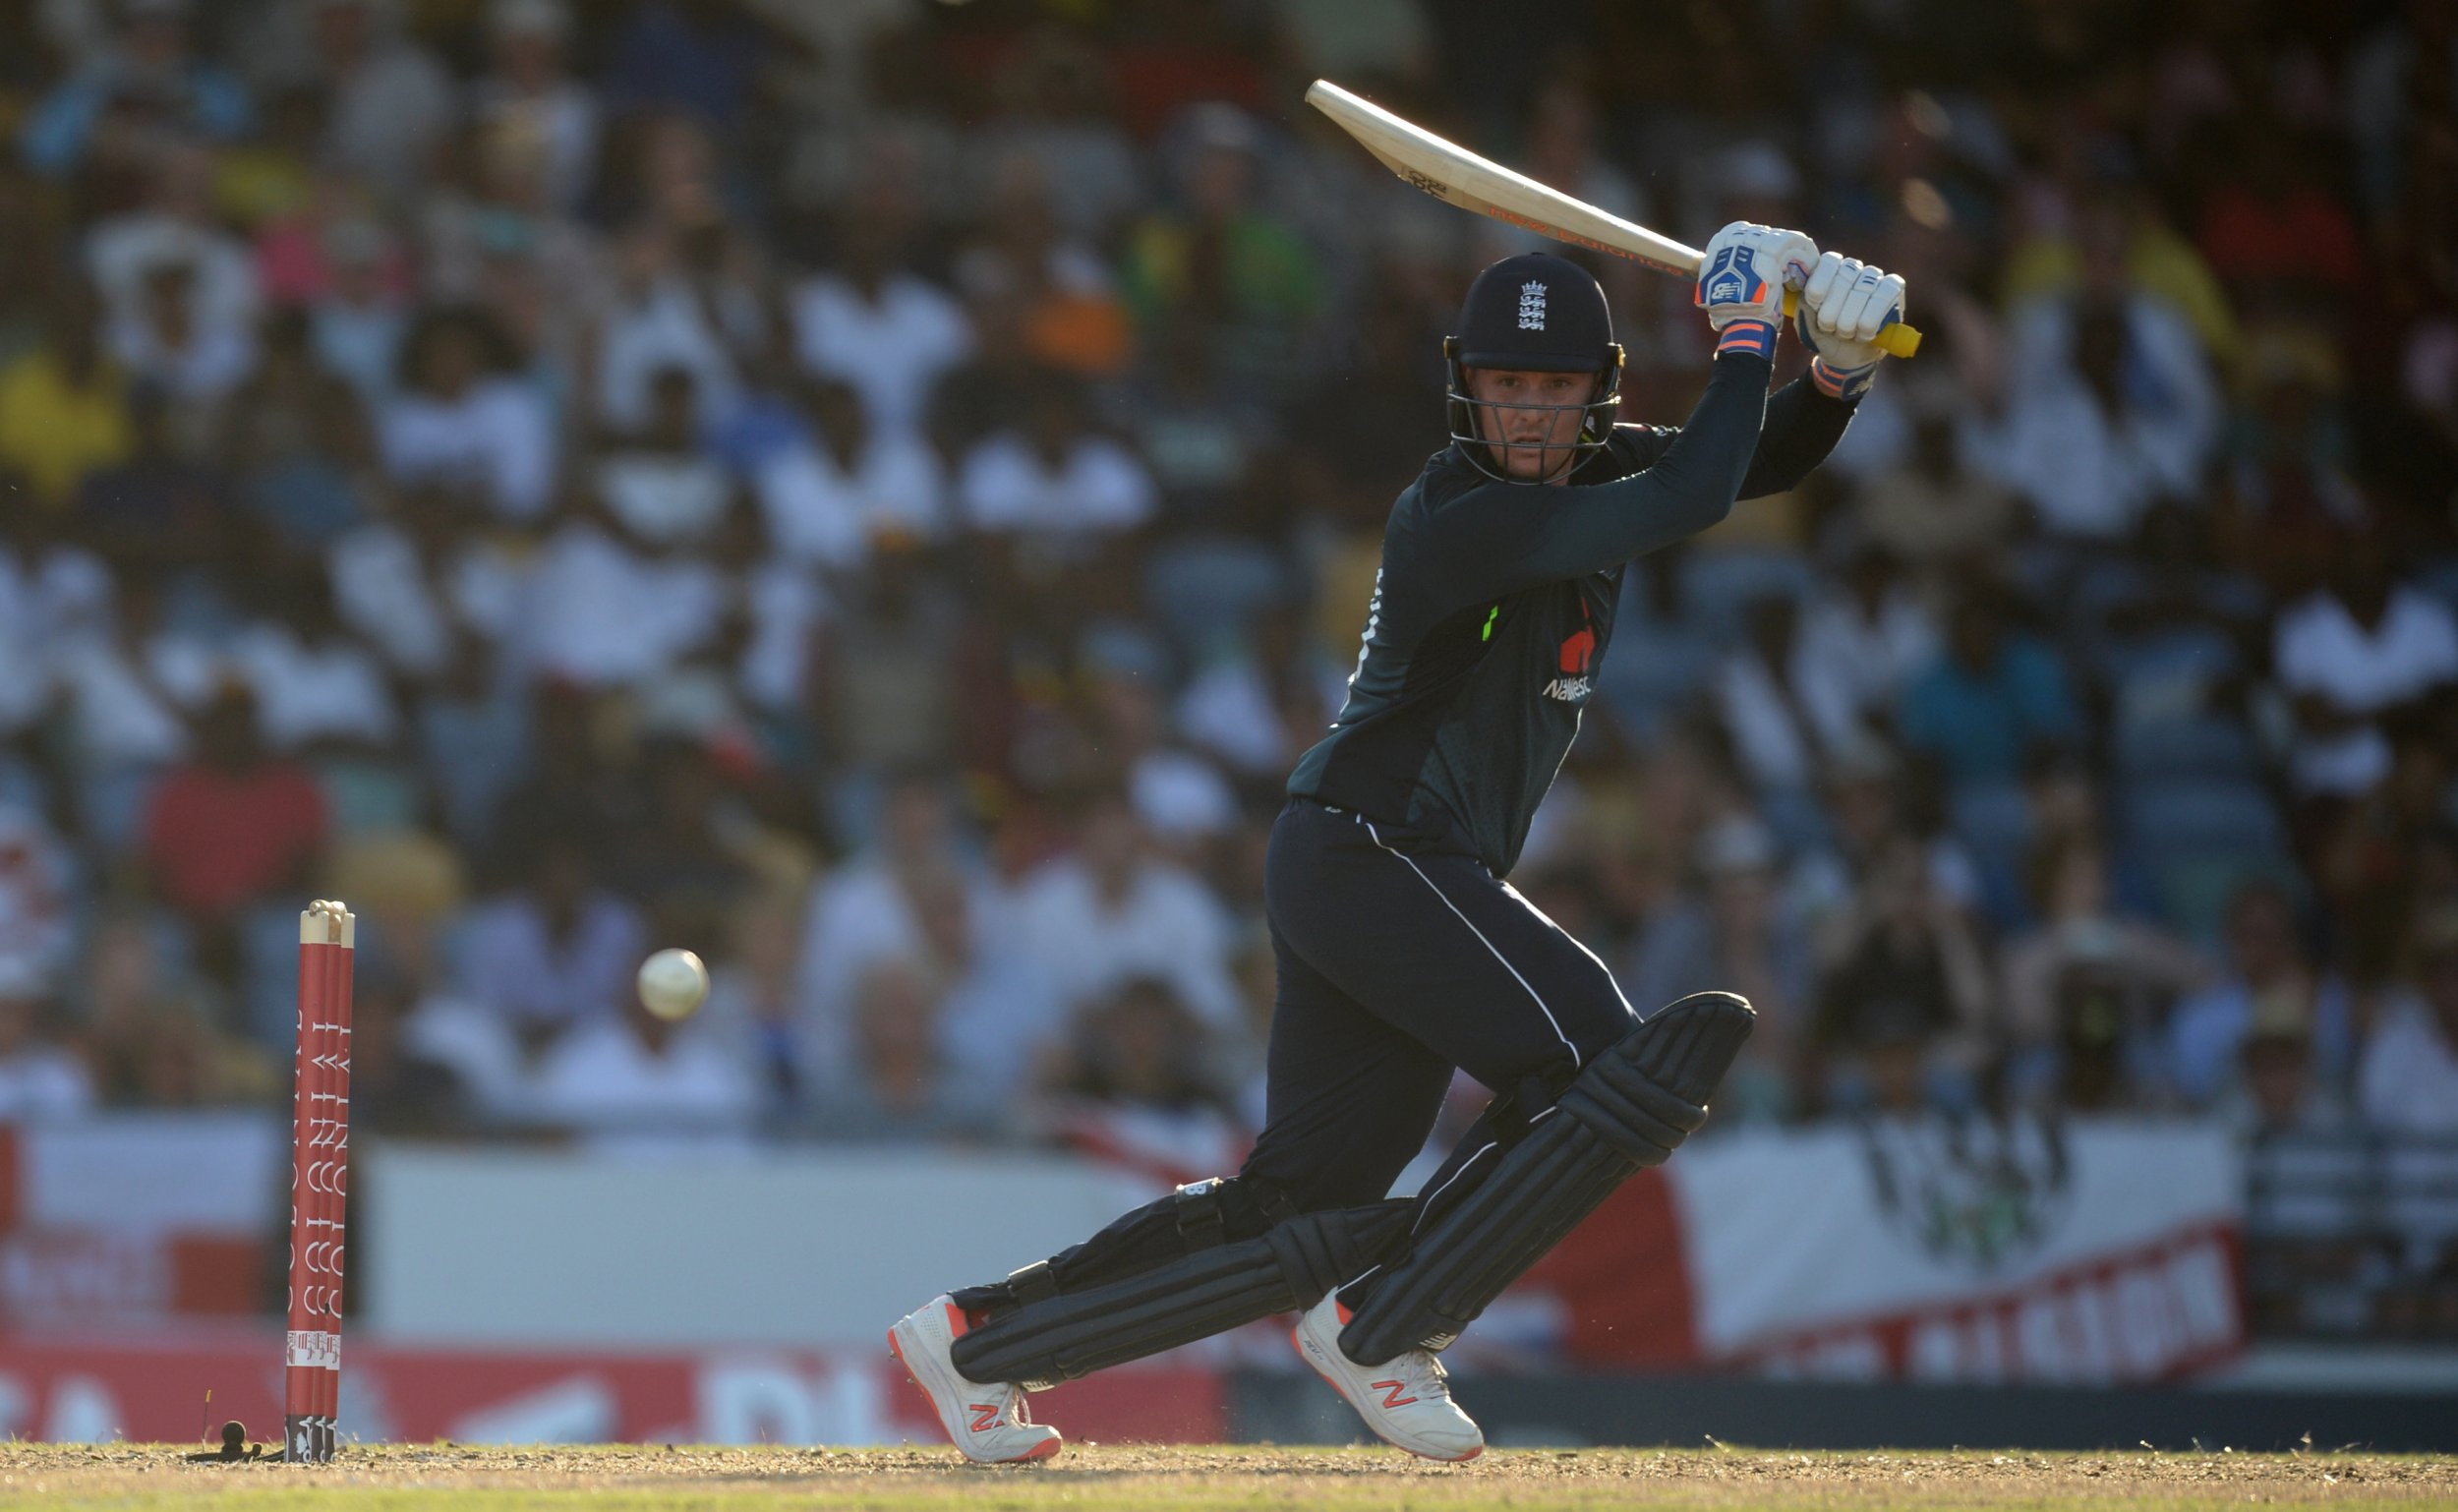 BRIDGETOWN, BARBADOS - FEBRUARY 20 : Jason Roy of England hits out during the first one-day international between the West Indies and England at Kensington Oval on February 20, 2019 in Bridgetown, Barbados. (Photo by Philip Brown/Popperfoto)